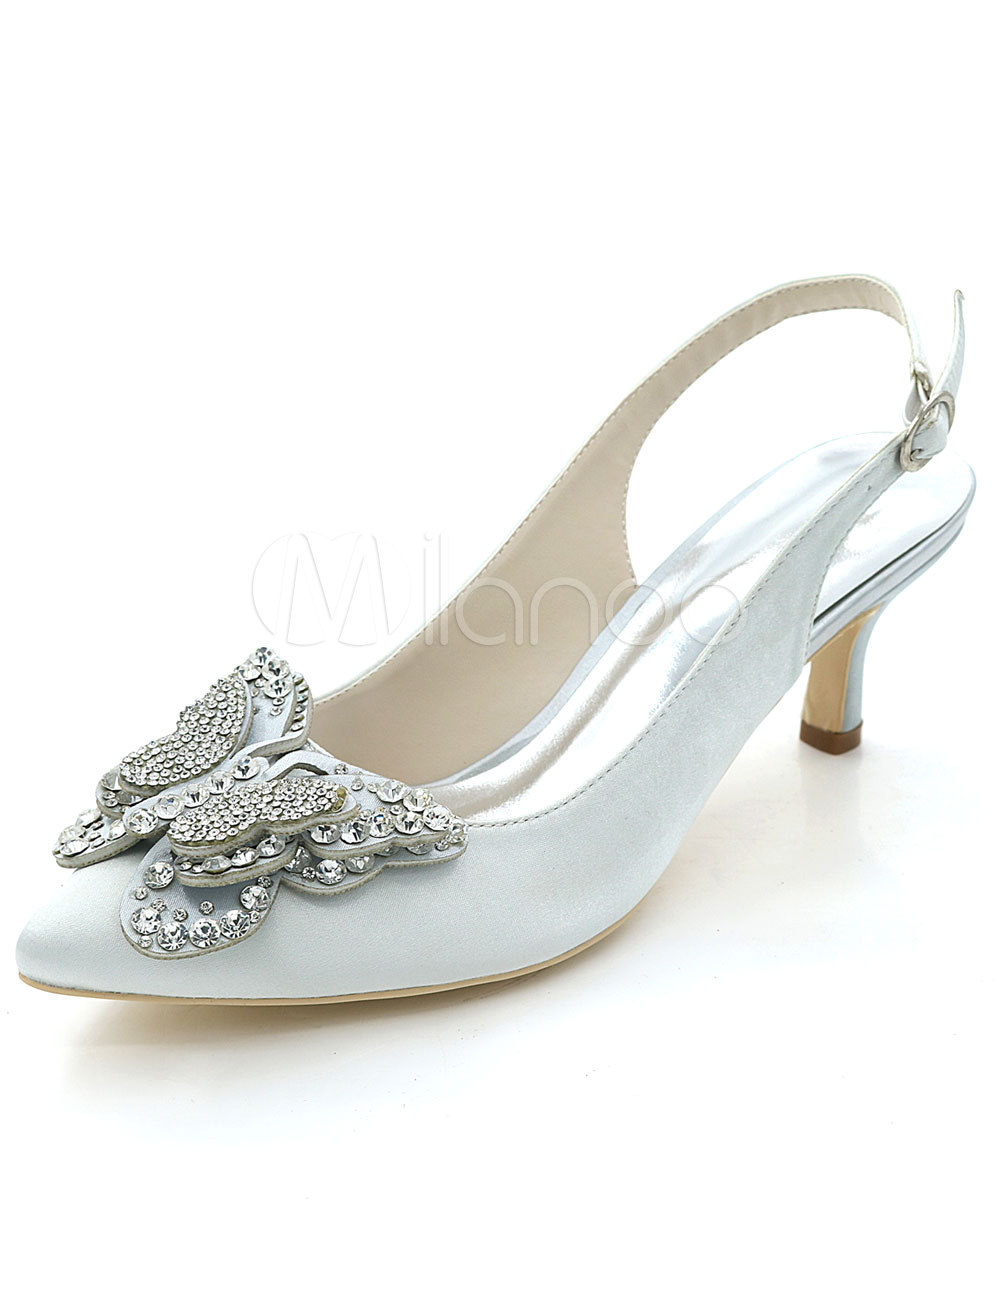 Buy Silver Wedding Shoes Pointed Toe Kitten Heel Butterfly Rhinestones Slingbacks Bridal Pumps for $51.29 in Milanoo store